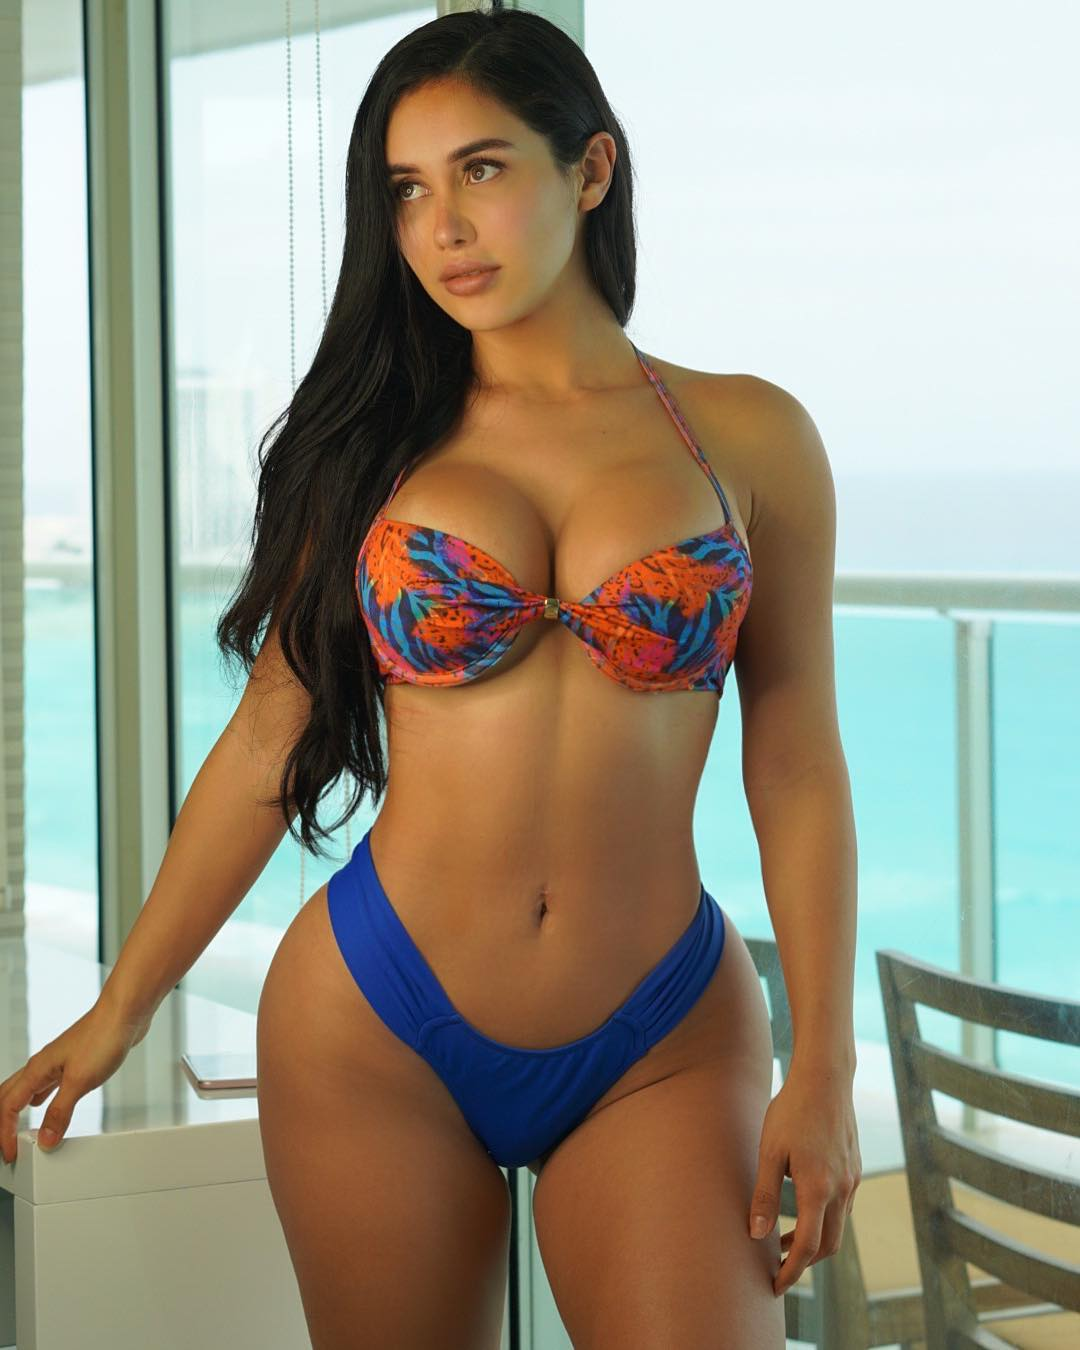 Joselyn Cano Big Boobs Hot Pictures